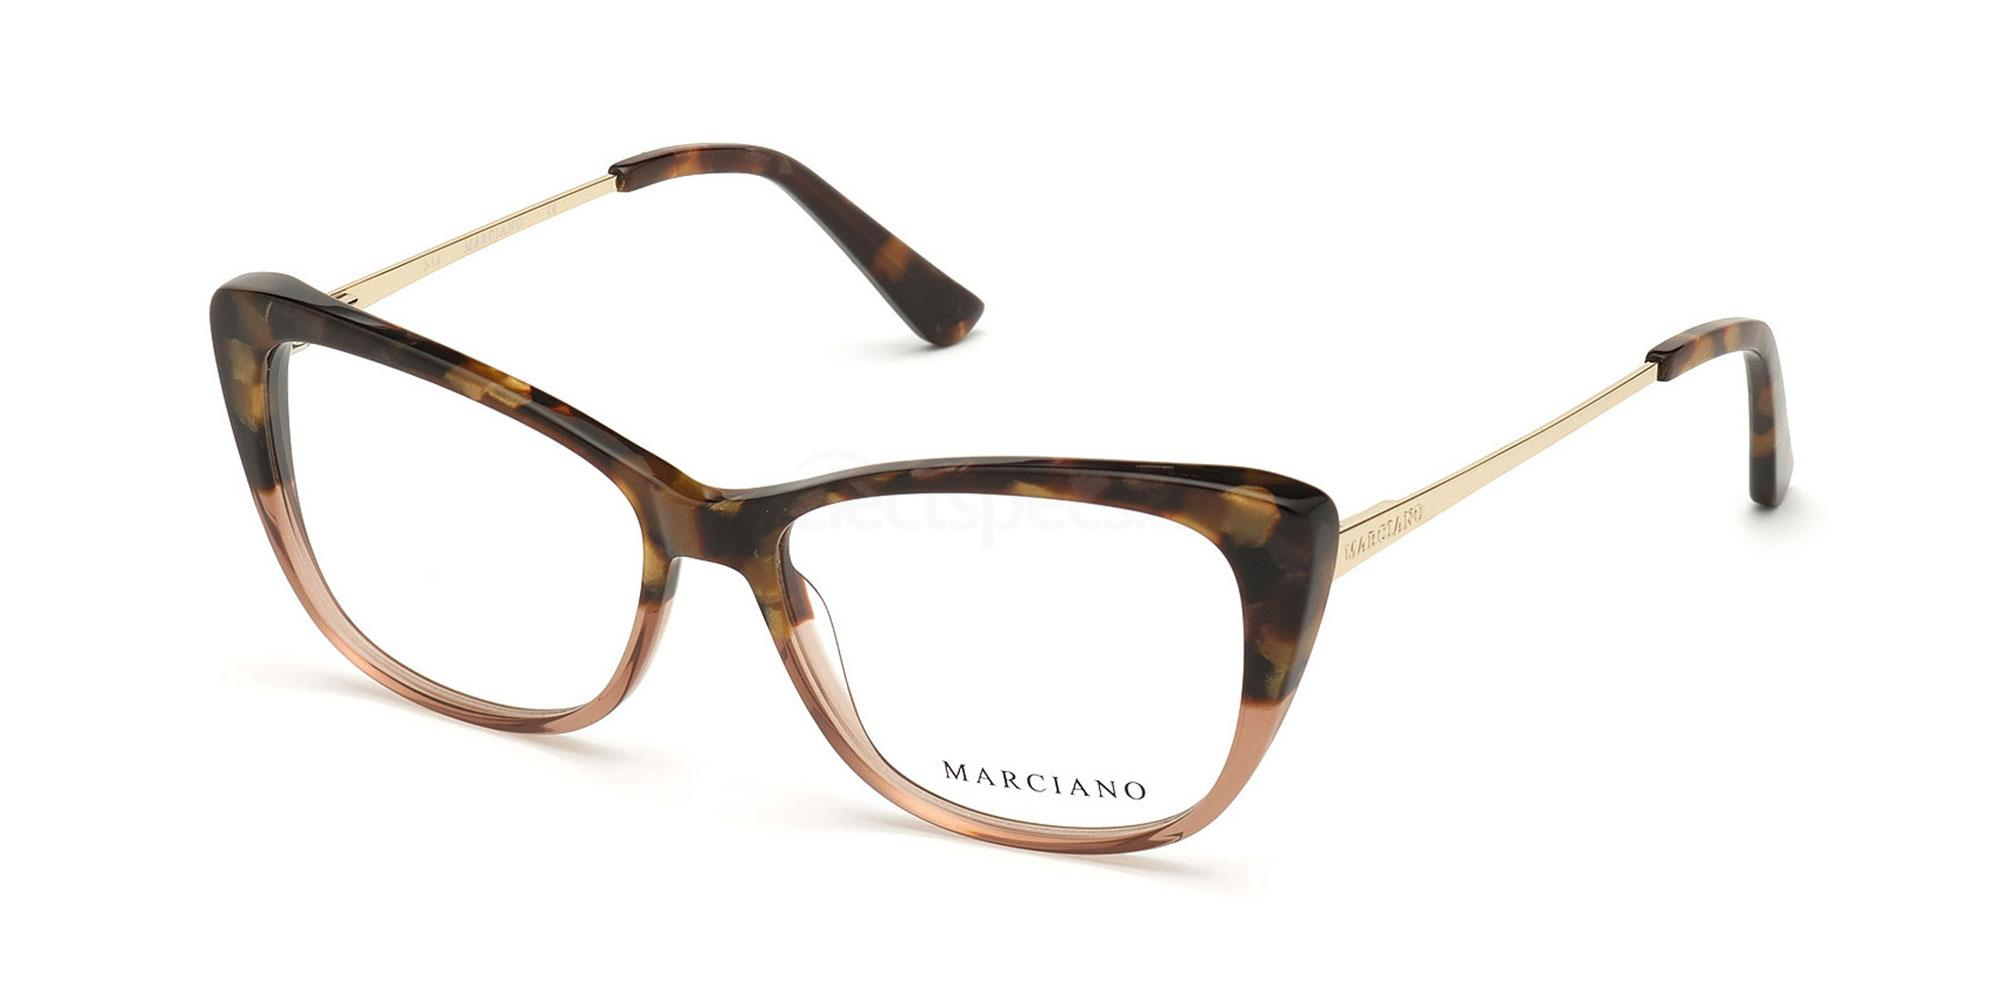 052 GM0352 Glasses, Guess by Marciano